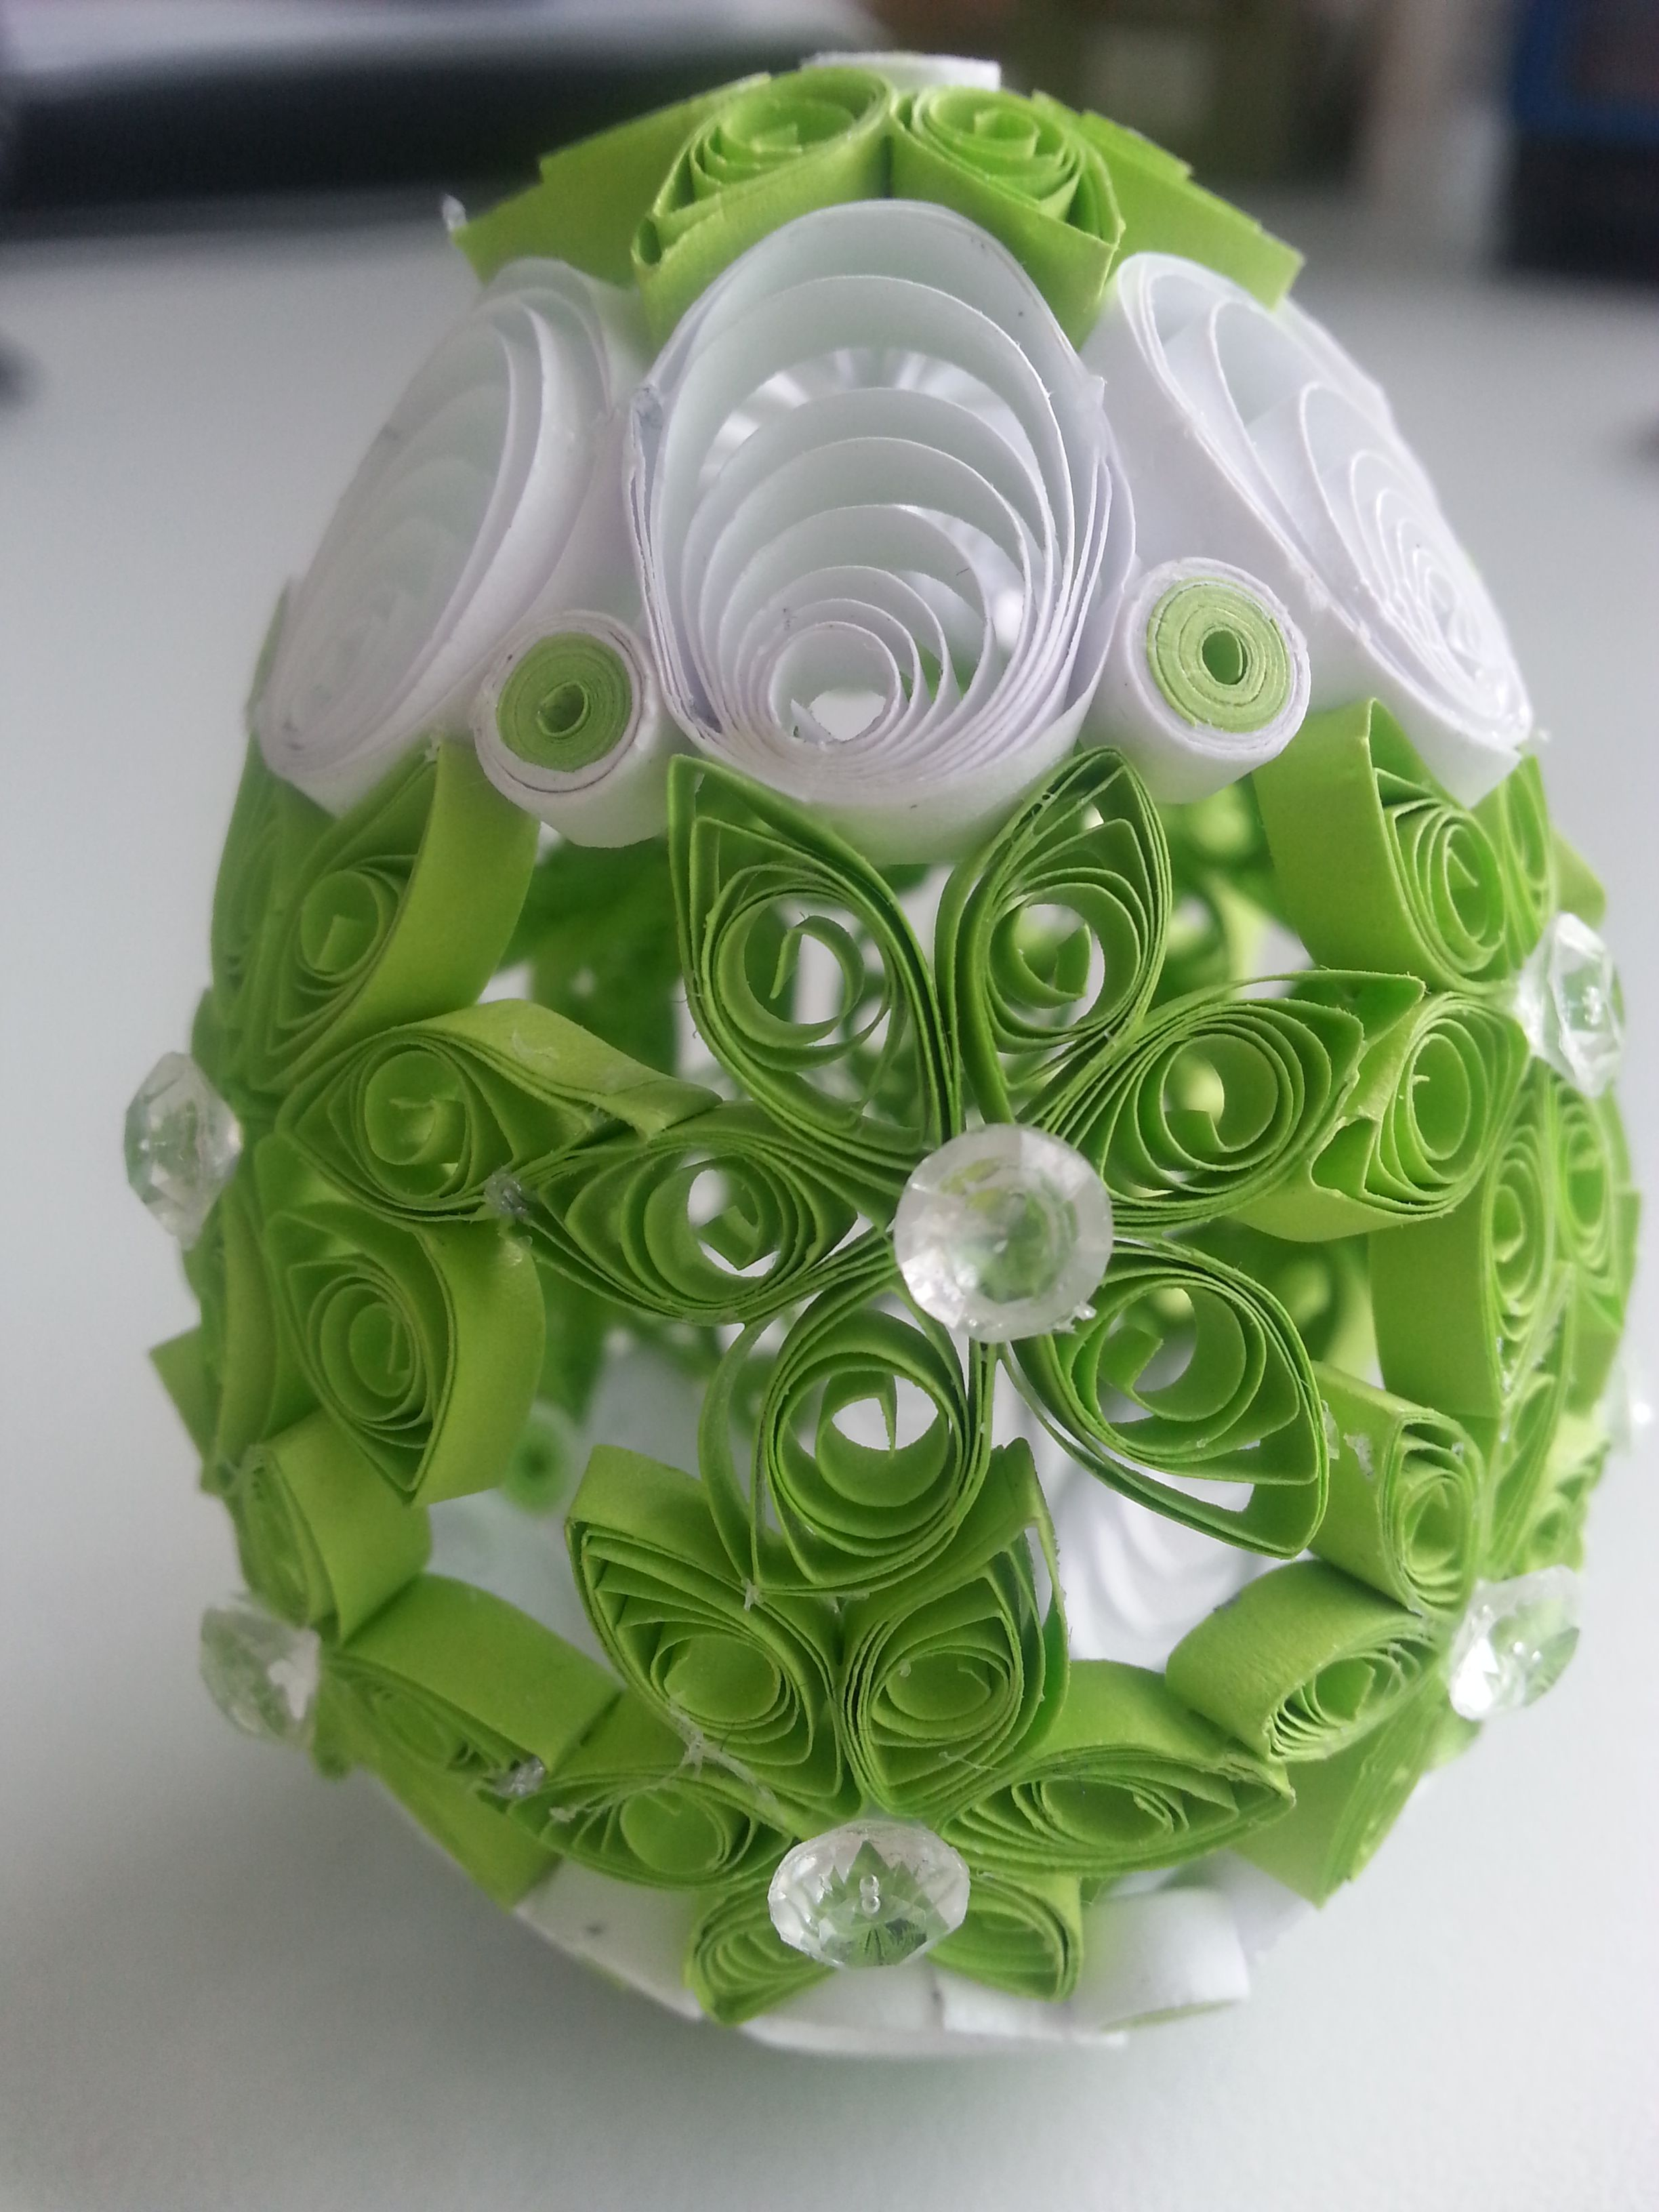 Floral Easter Egg Decorating Ideas Family Holiday Net Guide To